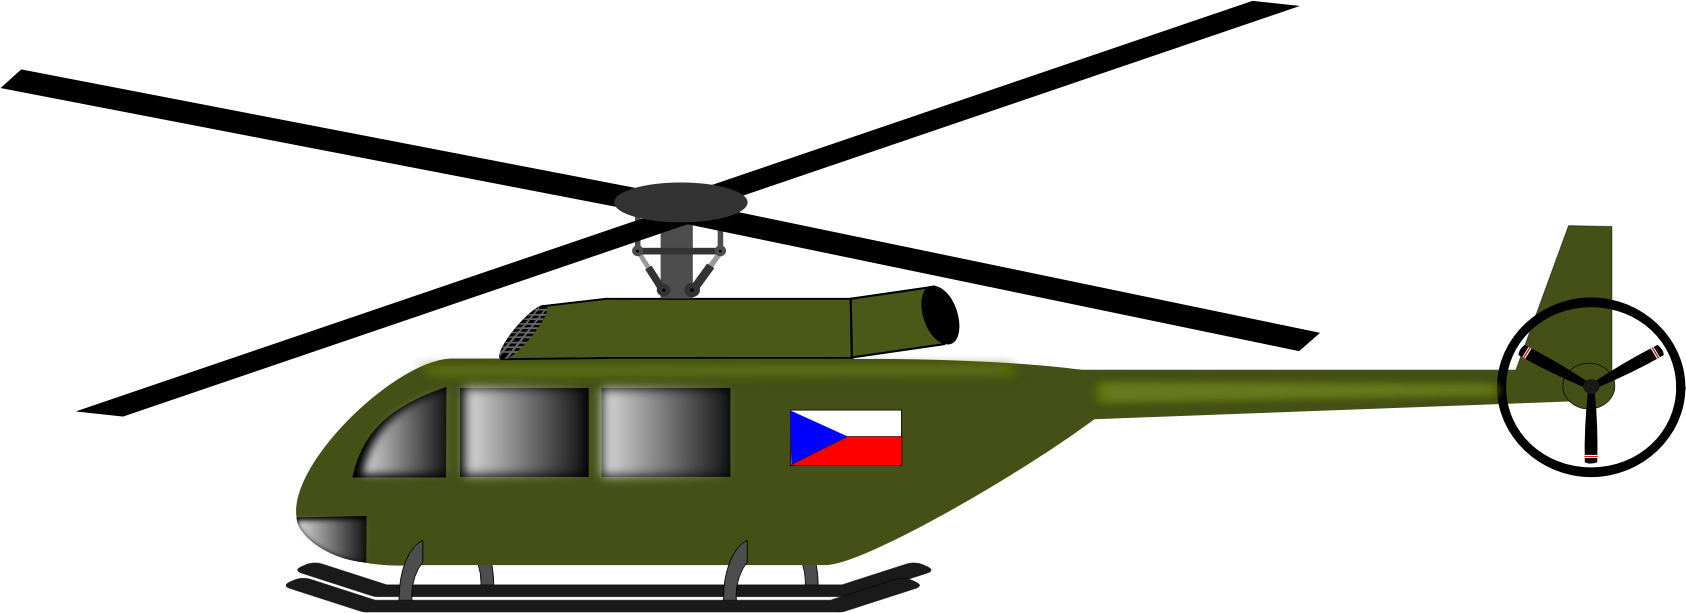 helicopter clipart hellicopter